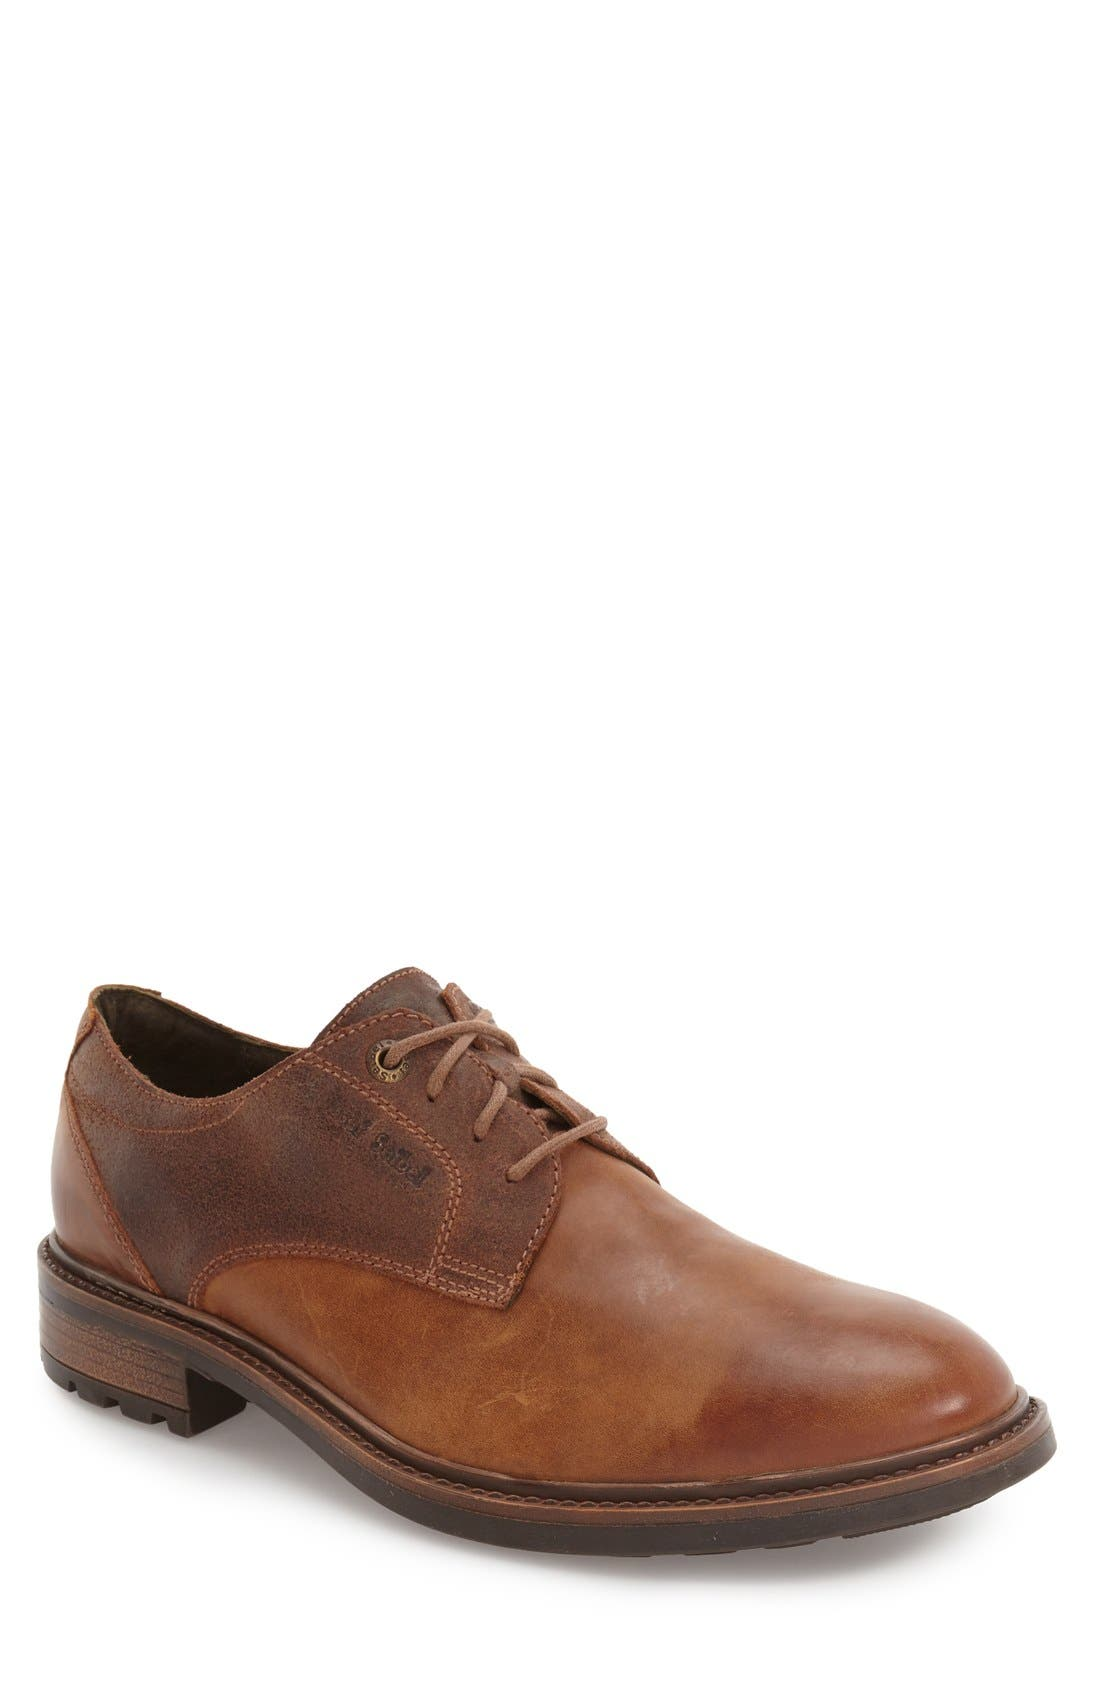 Oscar Plain Toe Derby,                             Alternate thumbnail 4, color,                             CASTAGNE LEATHER